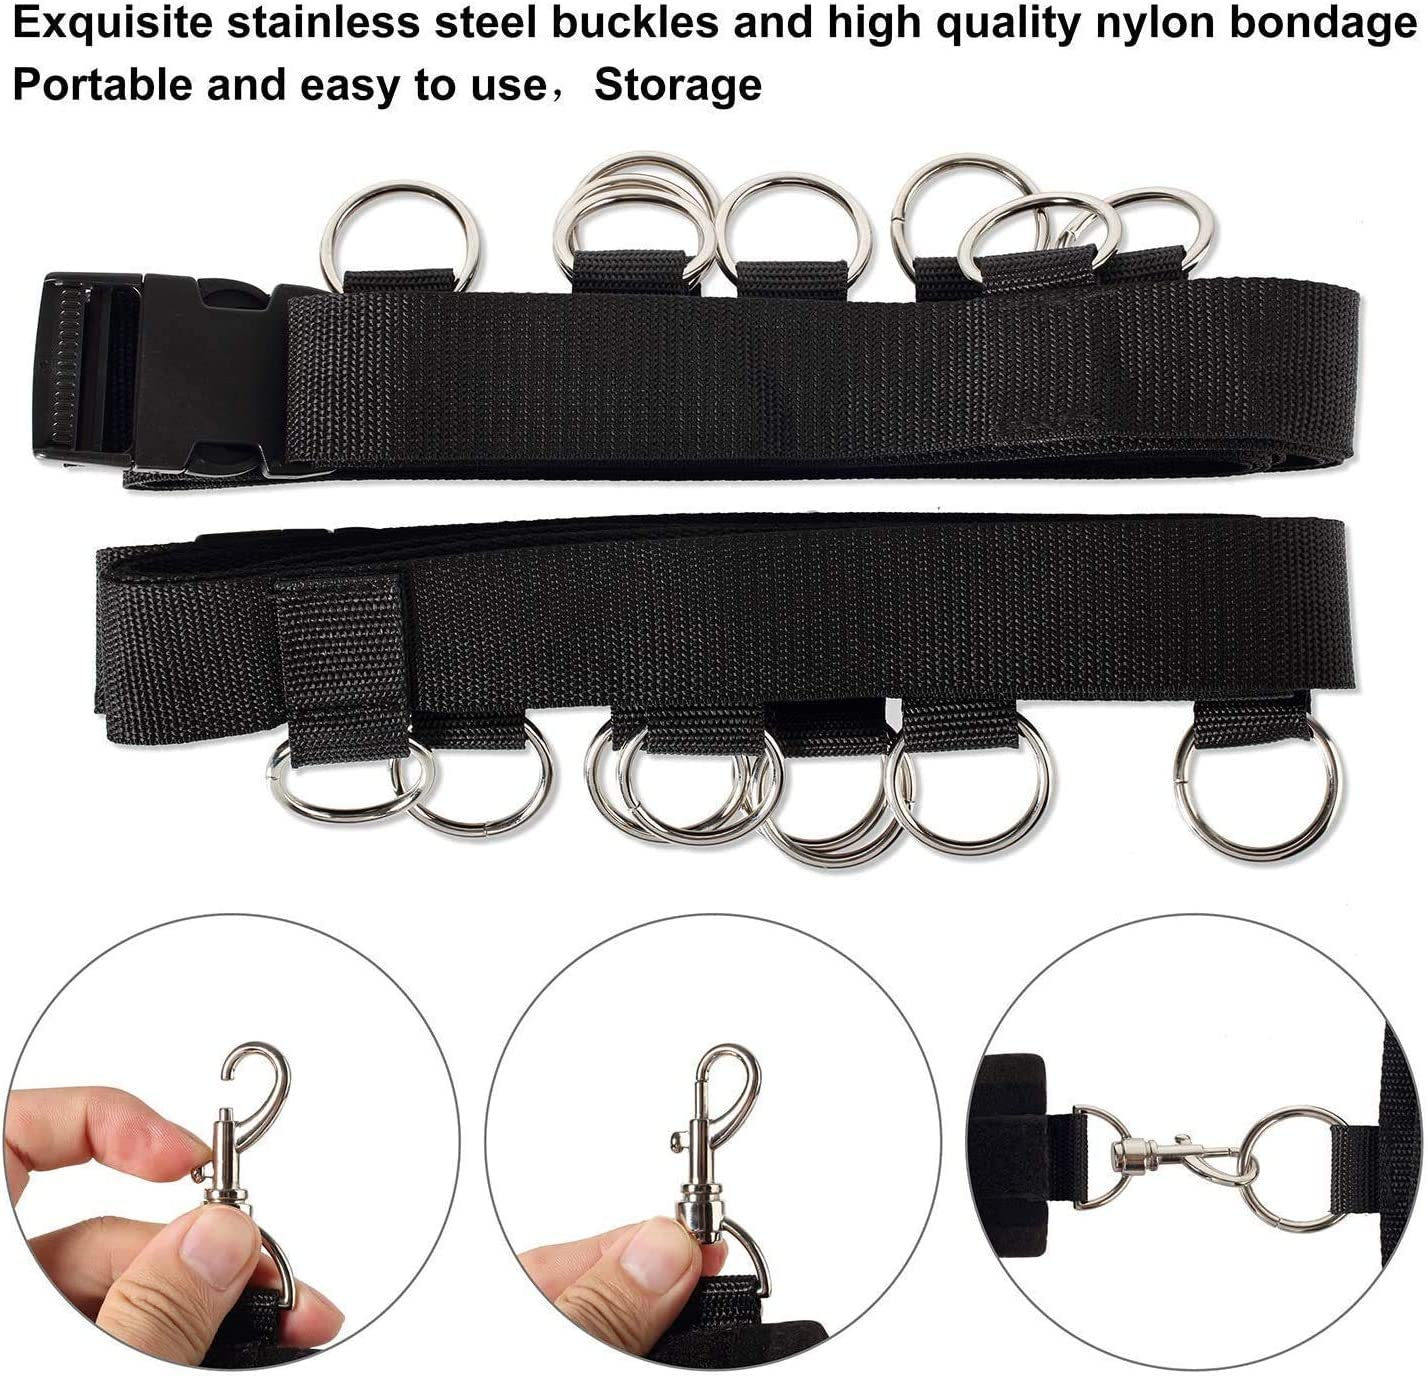 Novelty Nylon Combination Bed Soft Shoulder Strap Kit for Challenging Various Poses